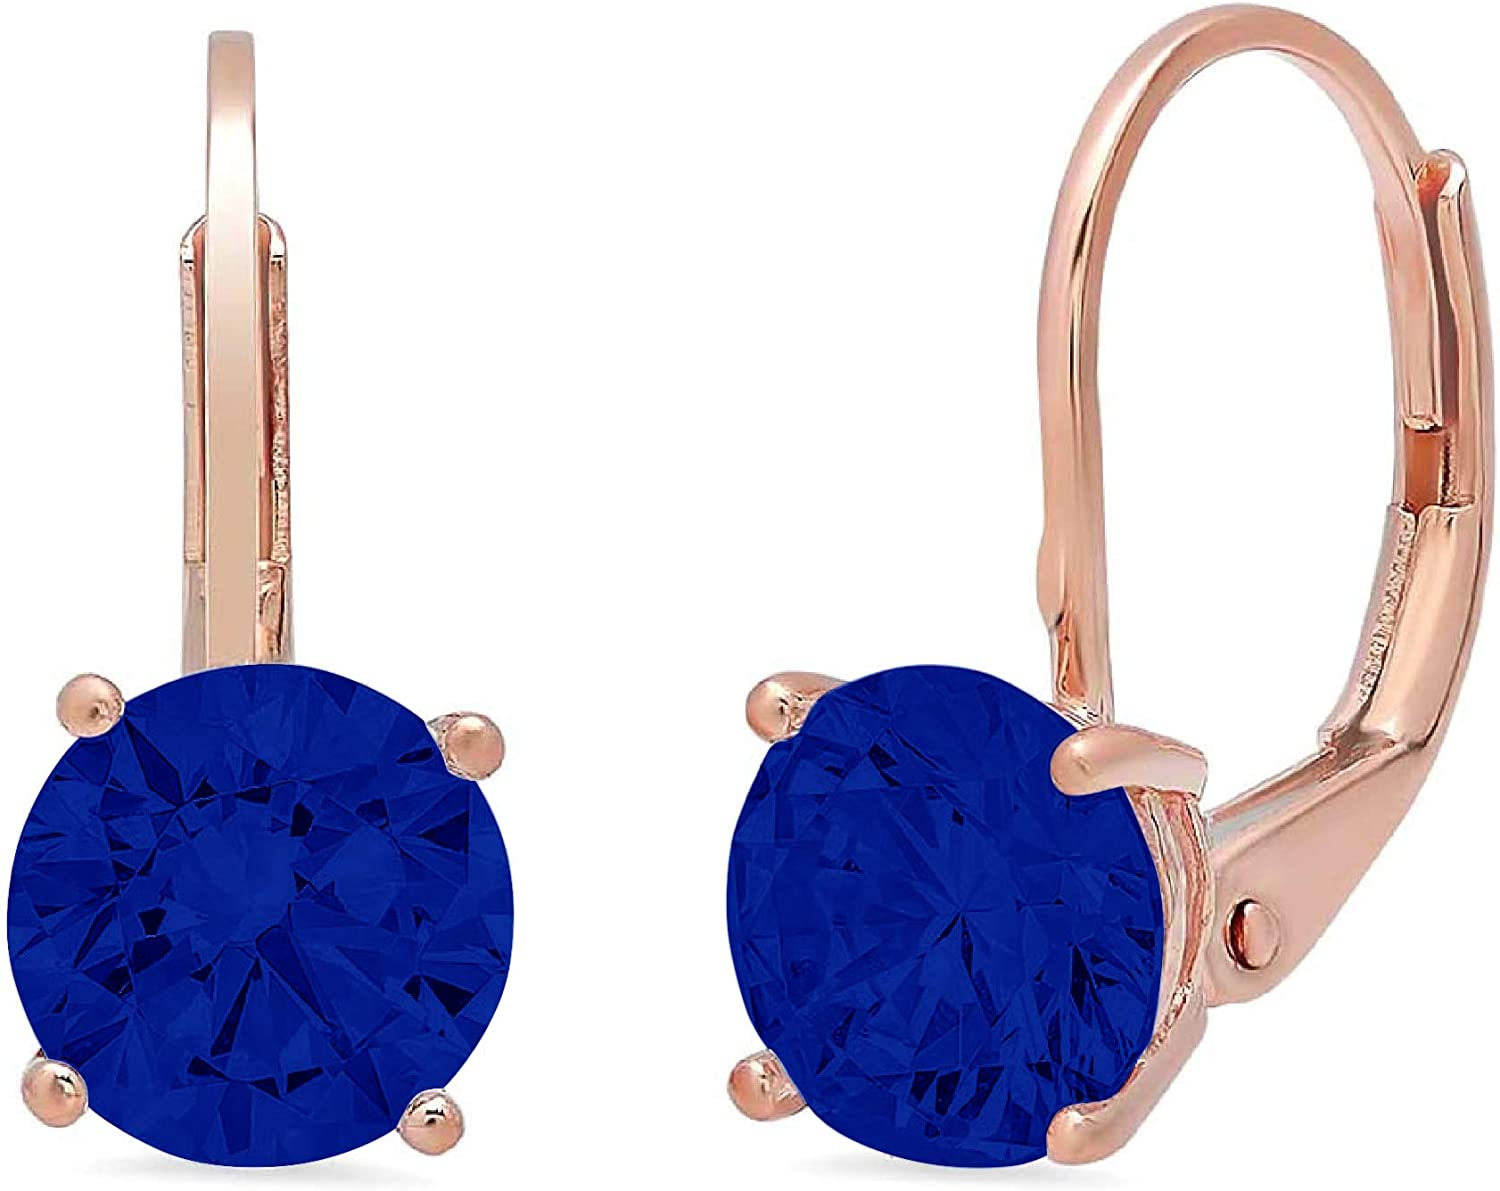 3.0 ct Brilliant Round Cut Solitaire Flawless Genuine CZ Simulated Blue Sapphire Gemstone Ideal Pair of Leverback Drop Dangle Designer Earrings Solid 14k Rose Pink Gold